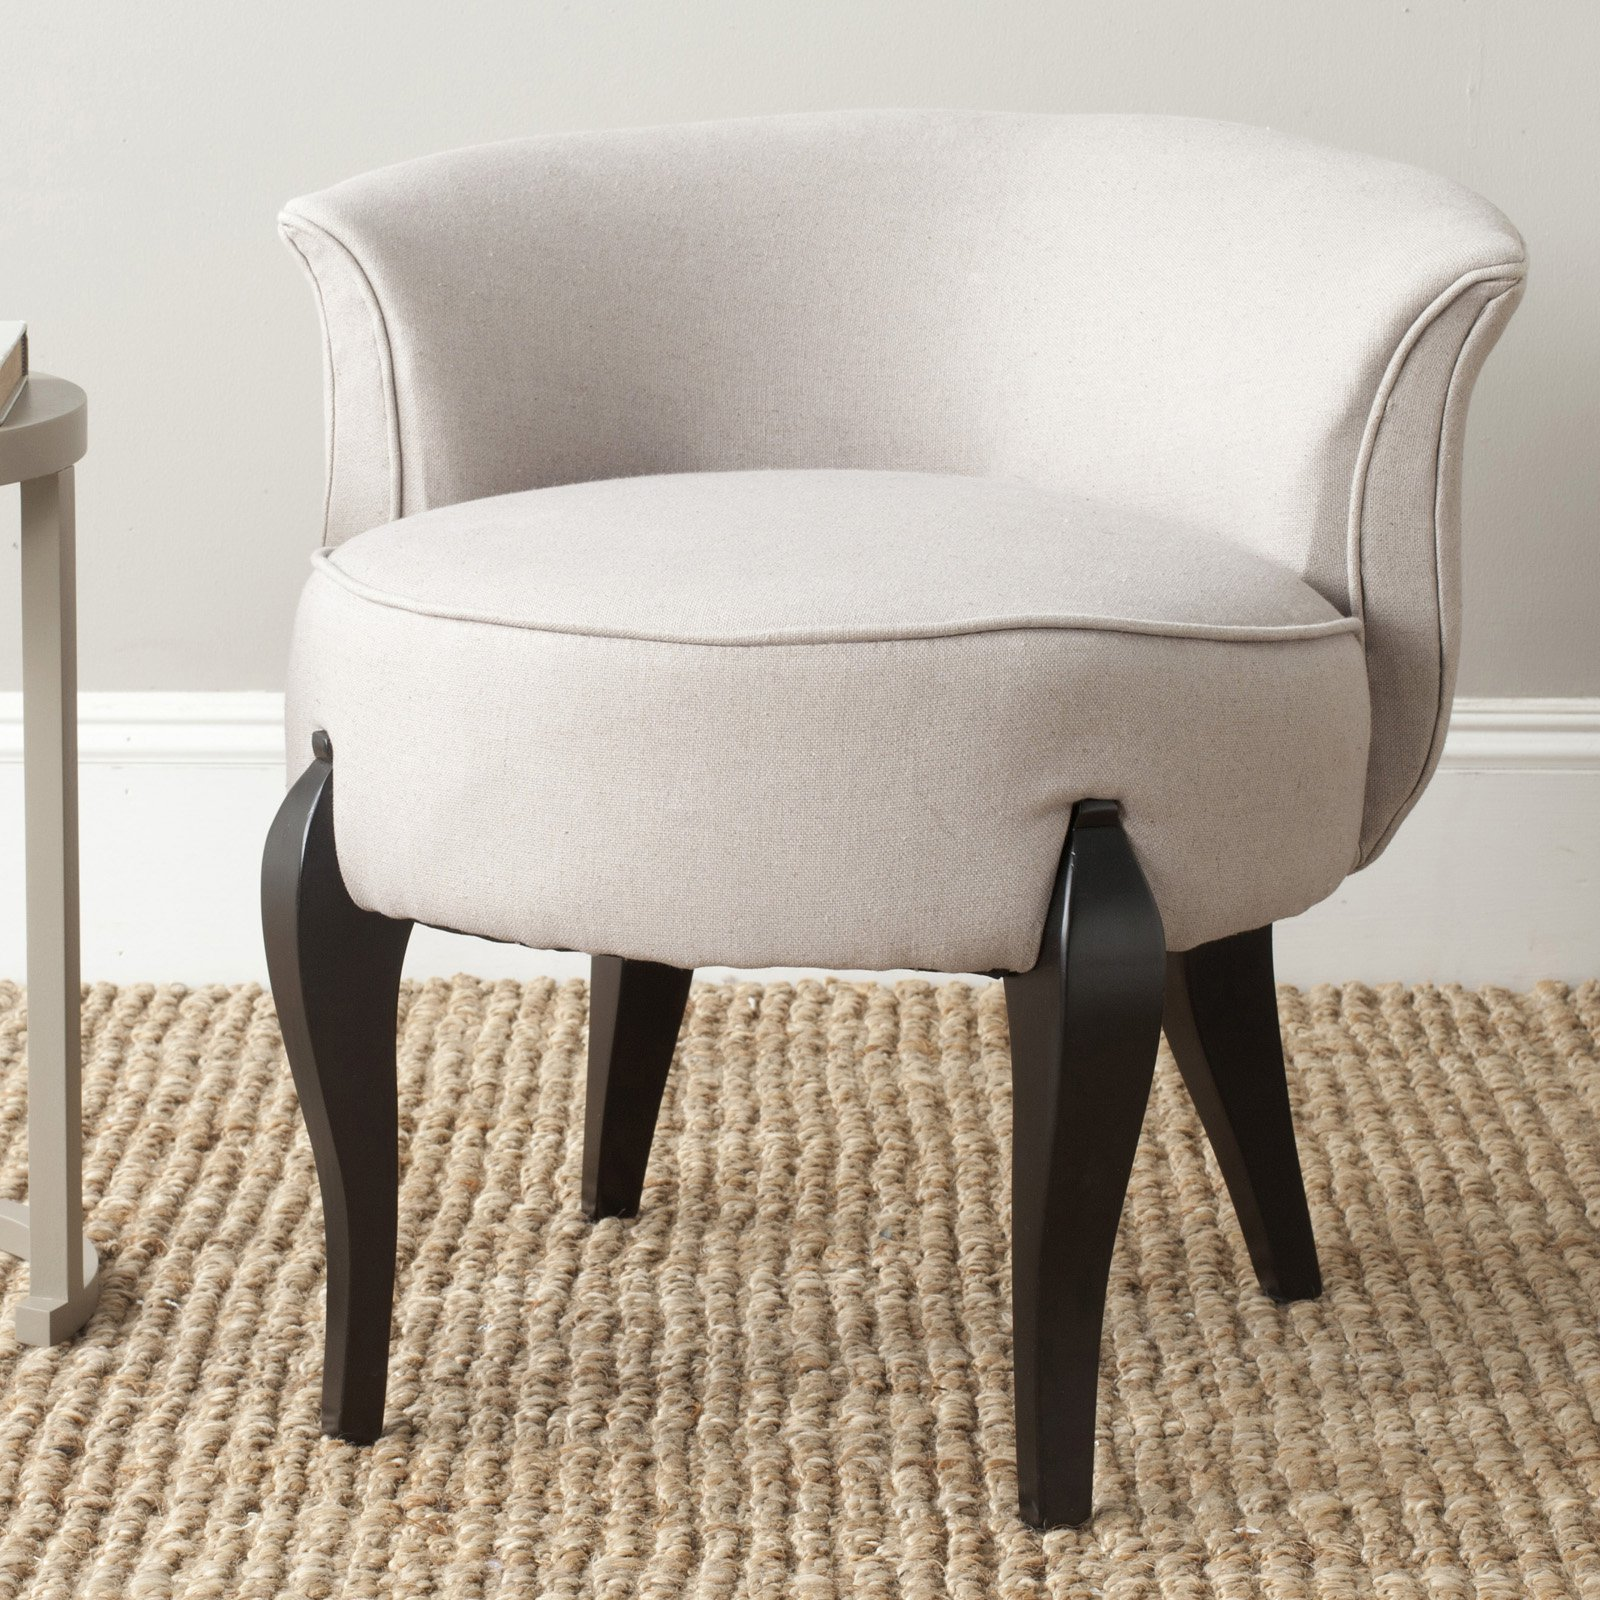 Safavieh Mora French Leg Linen Vanity Chair